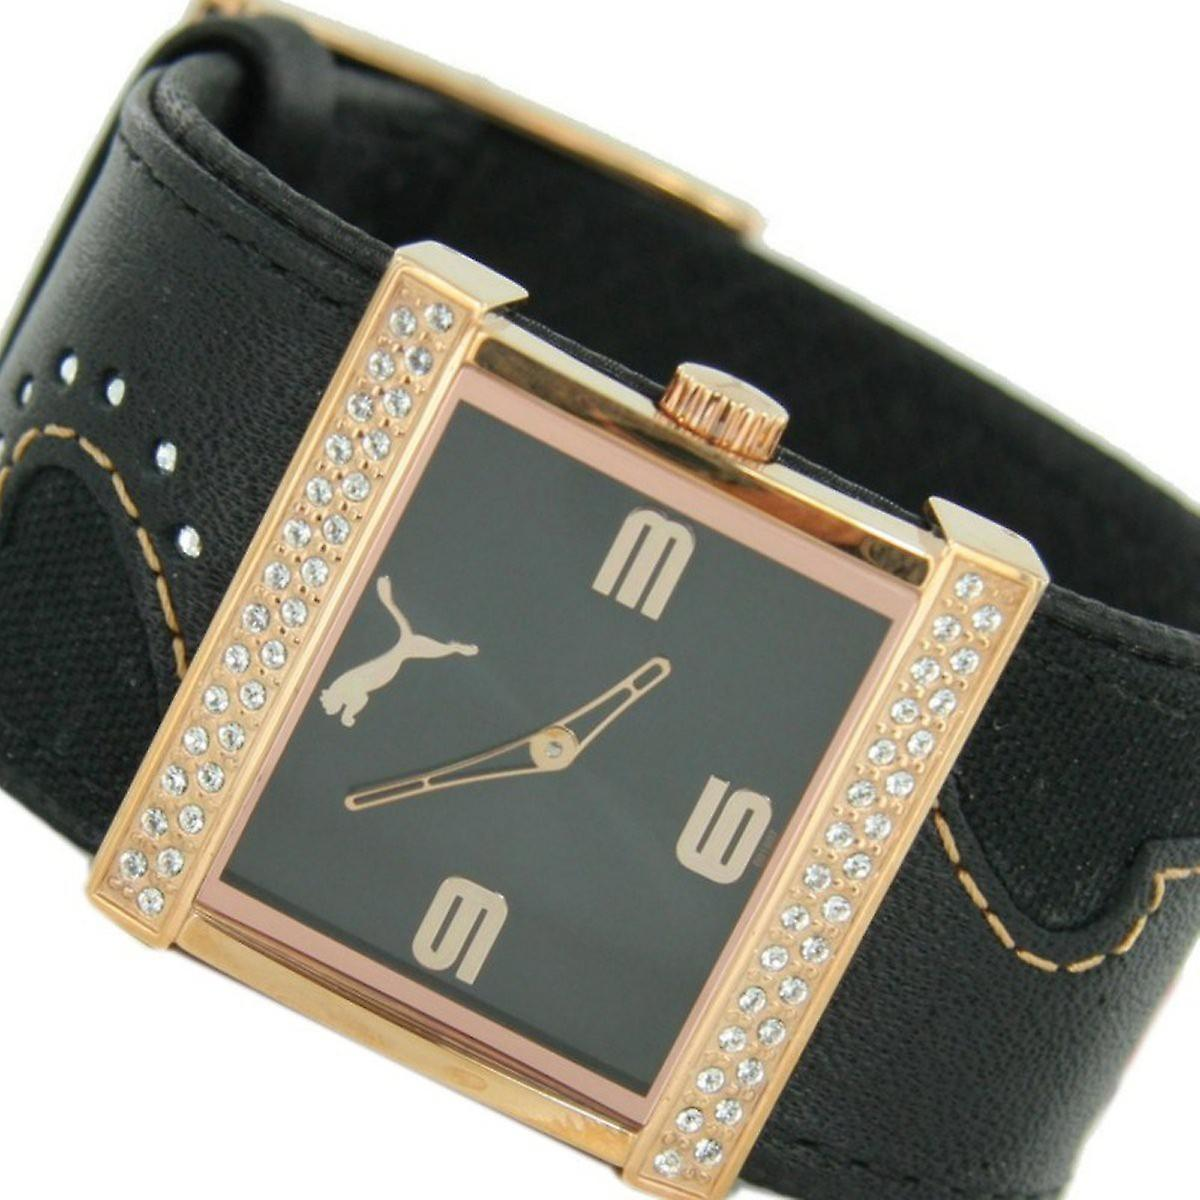 PUMA ladies watch Valentine special PU100112005